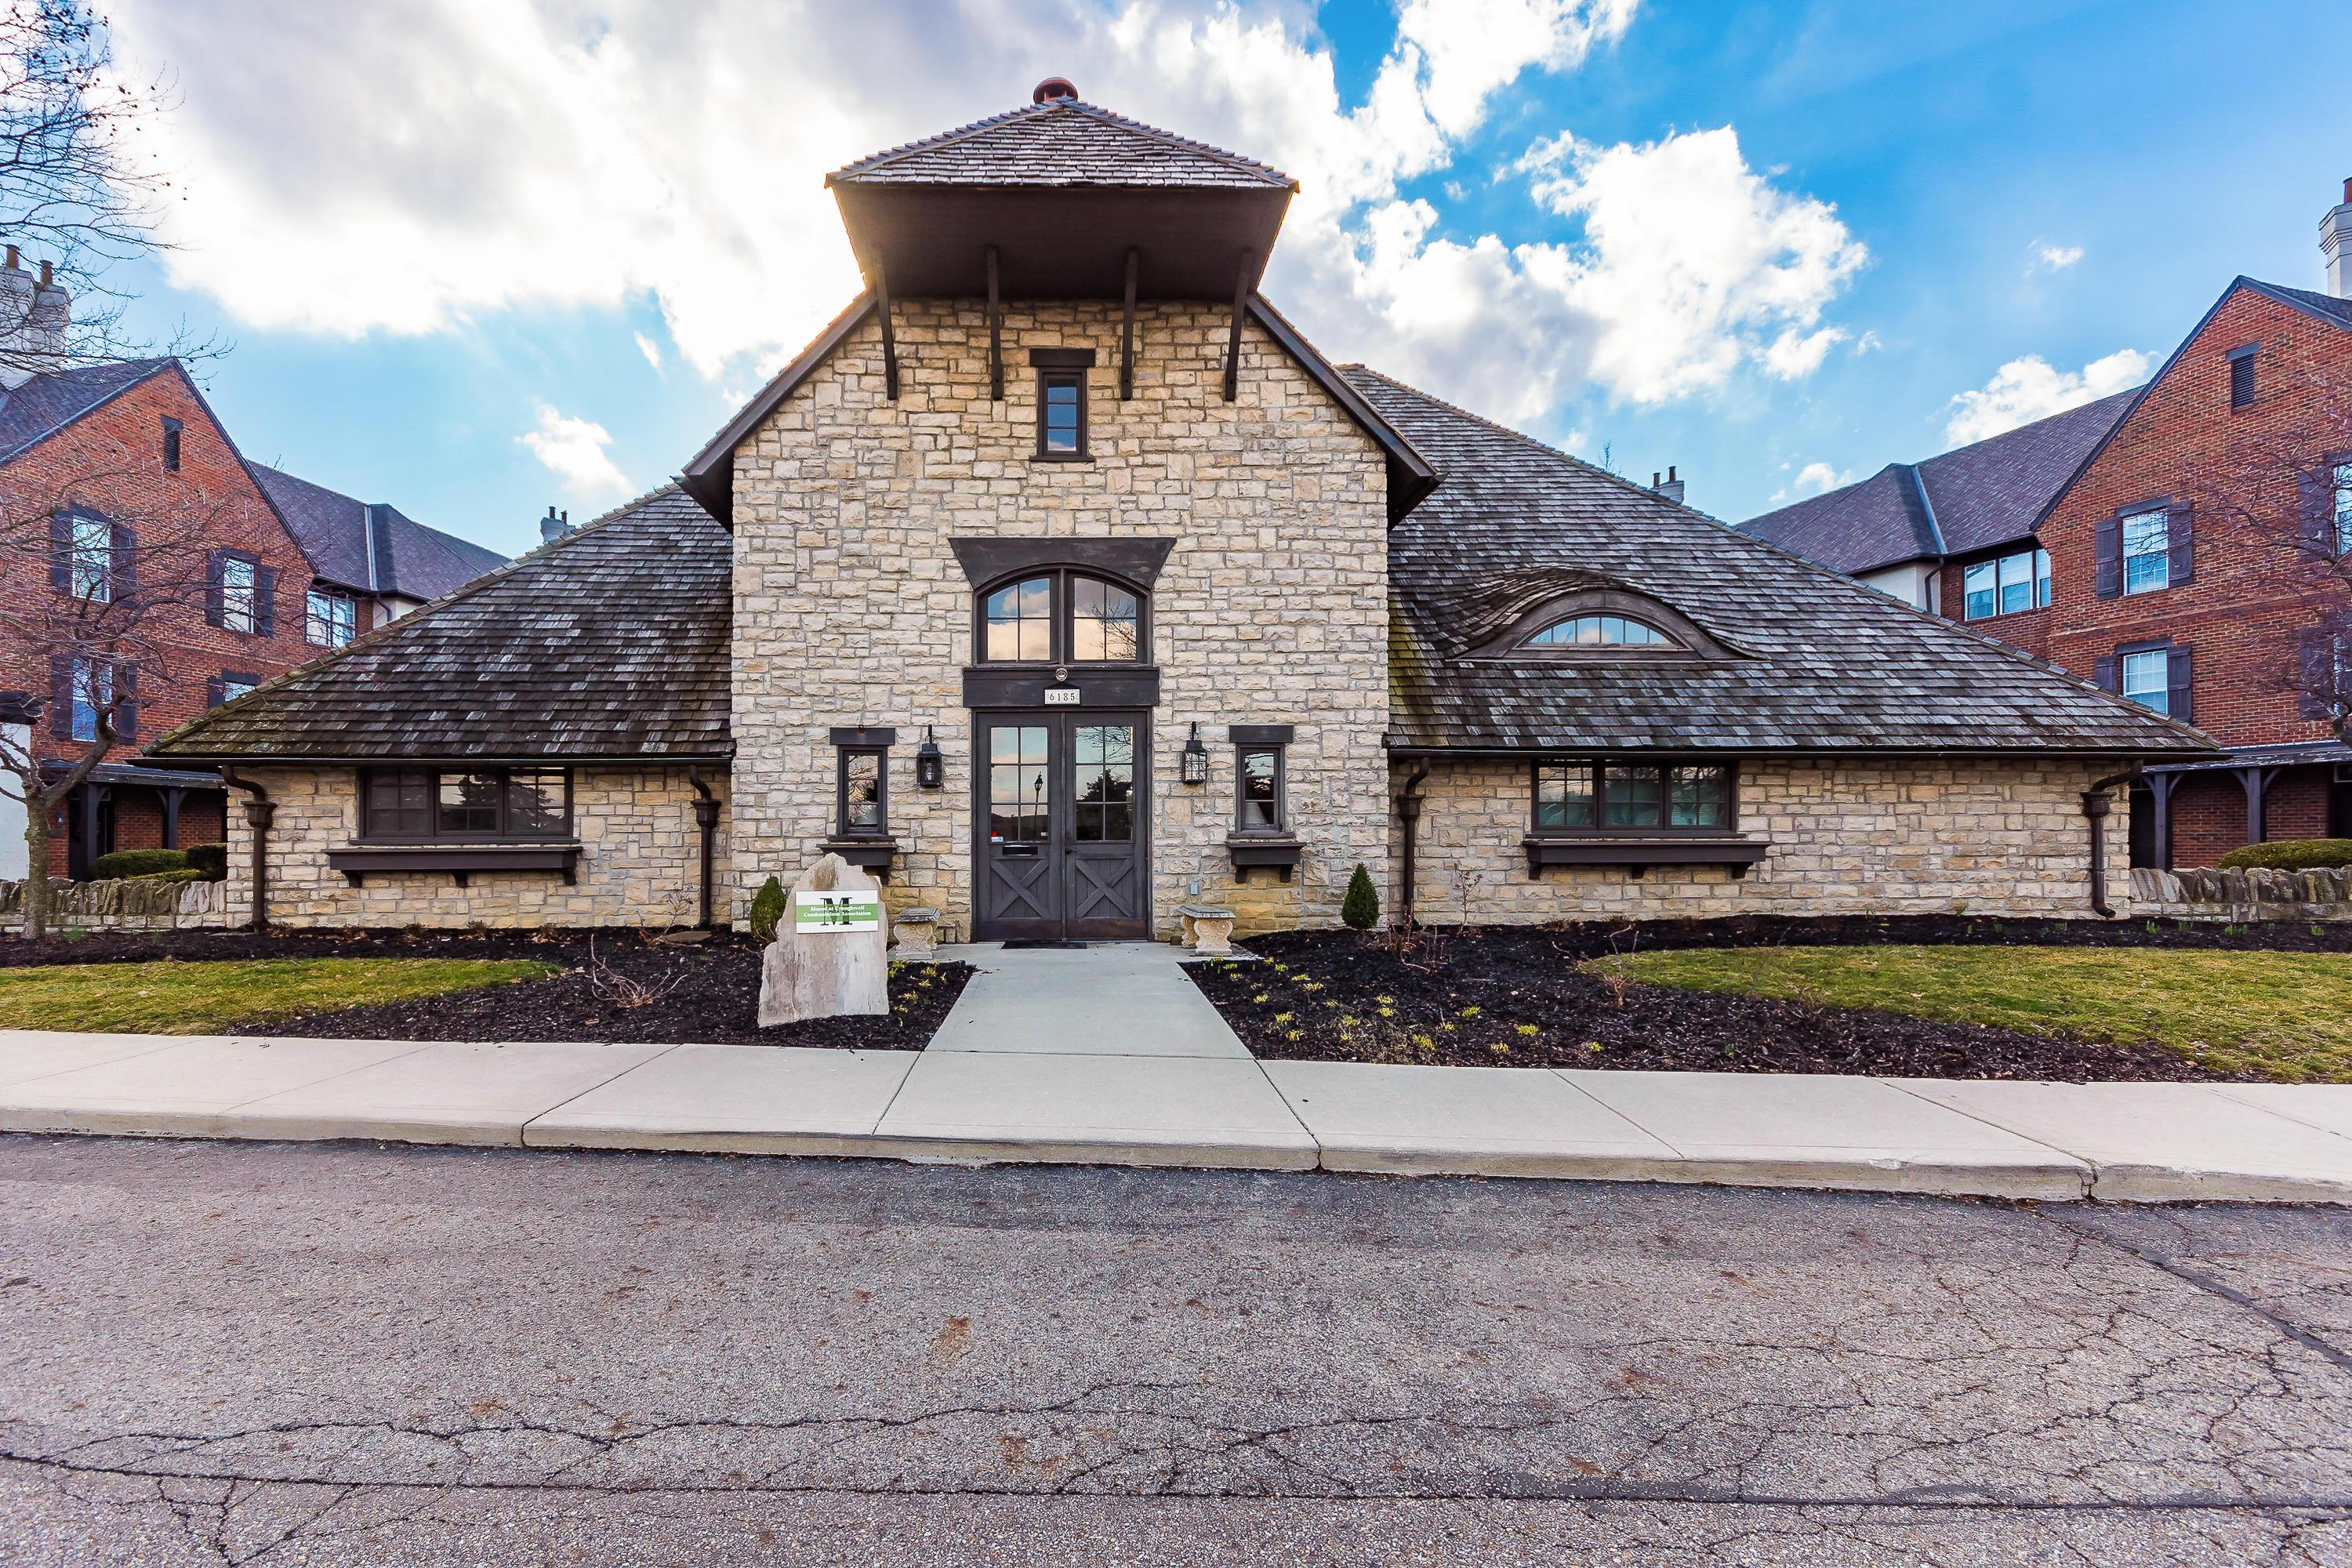 6038 Inishmore Lane, Dublin, Ohio 43017, 1 Bedroom Bedrooms, ,1 BathroomBathrooms,Residential,For Sale,Inishmore,220031574